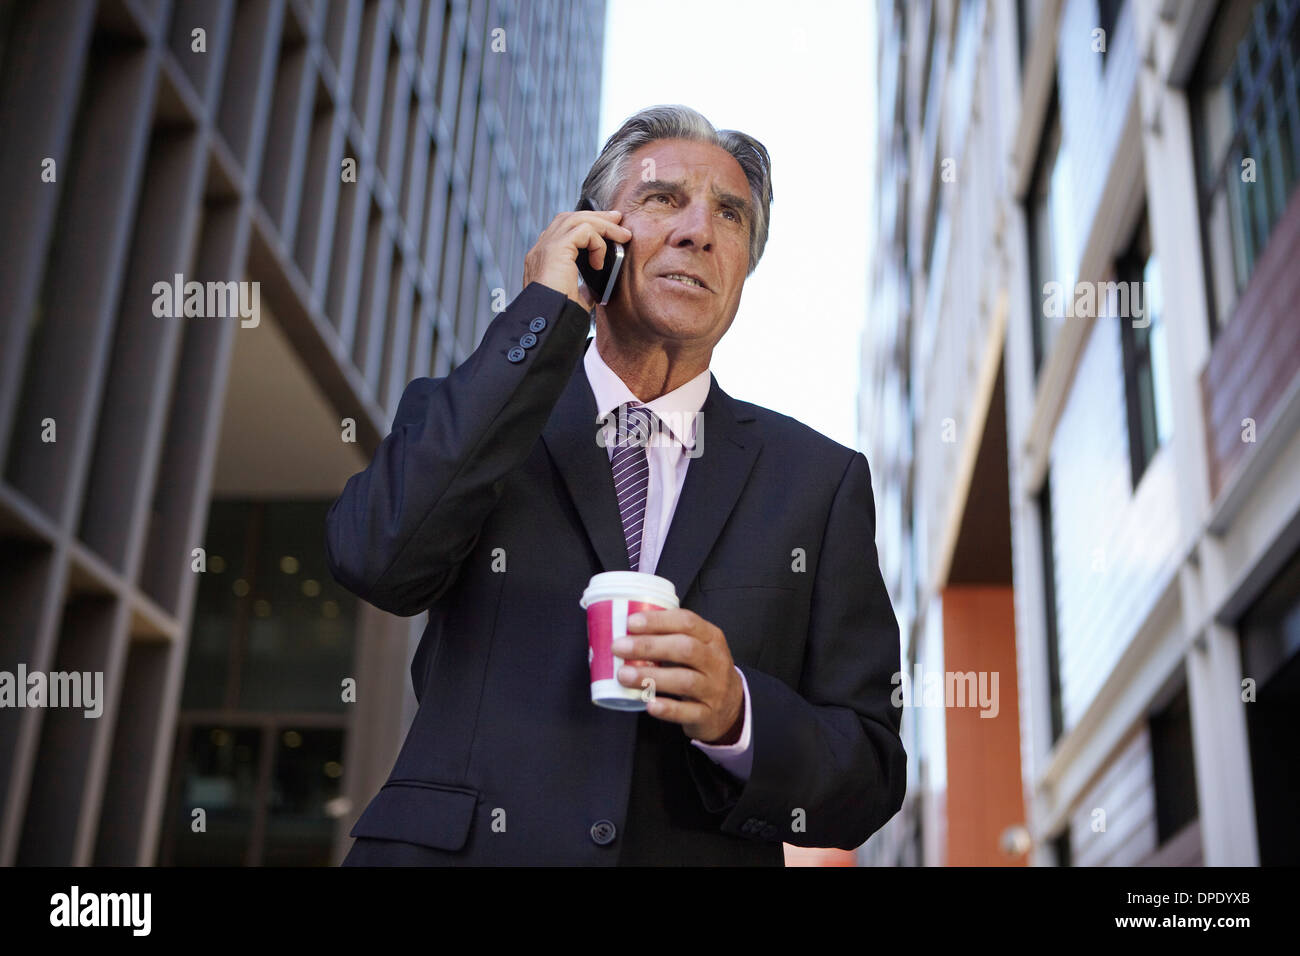 Businessman holding smartphone and hot drink, making phonecall - Stock Image